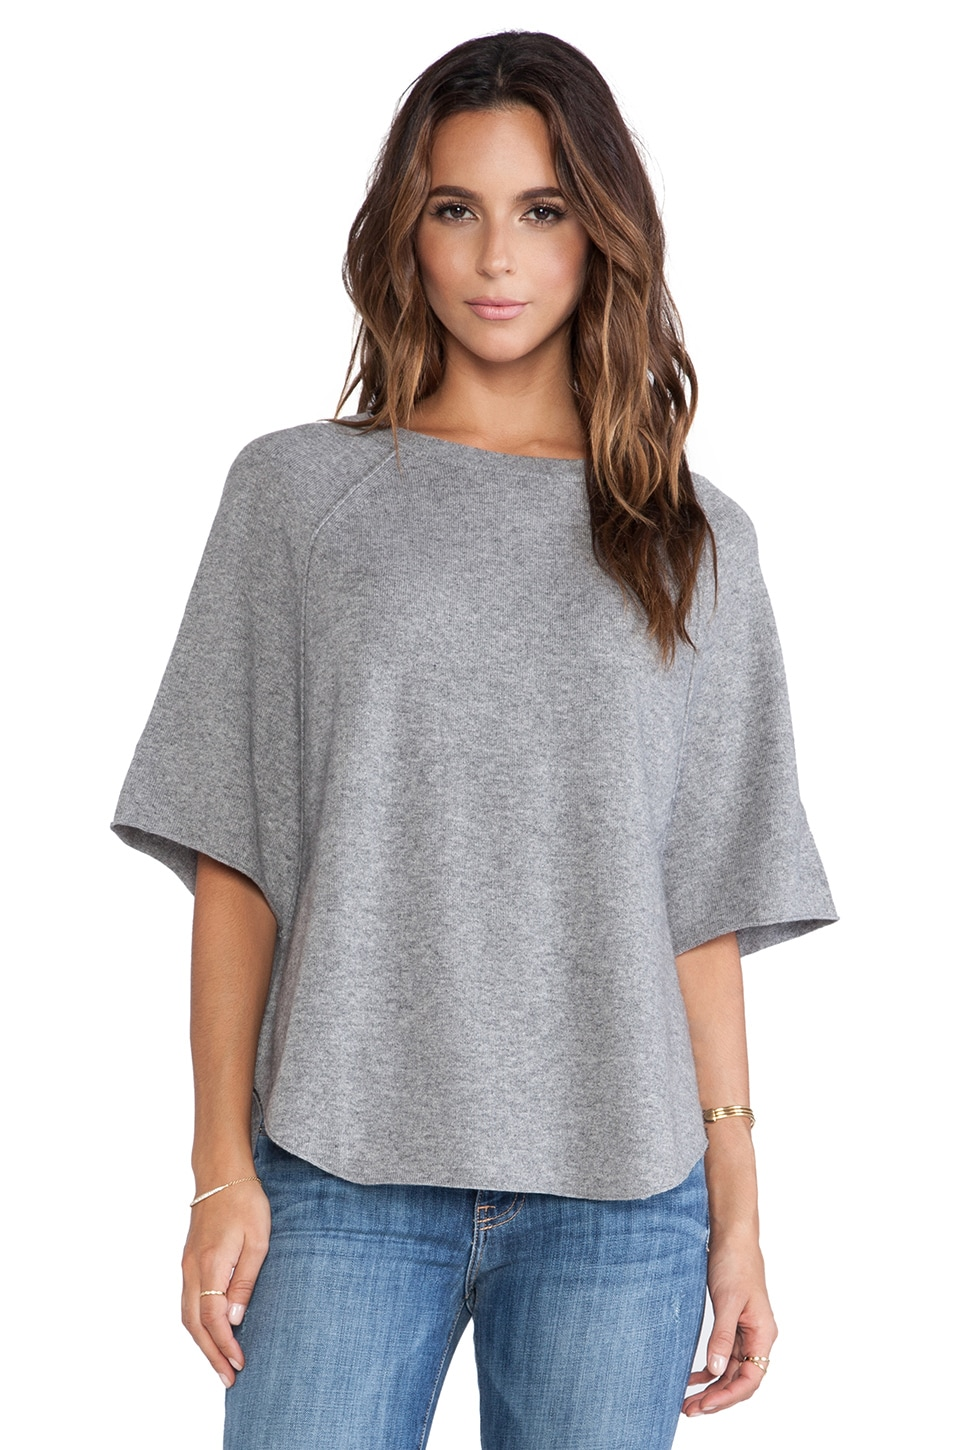 Joie Jolena Sweater in Heather Grey